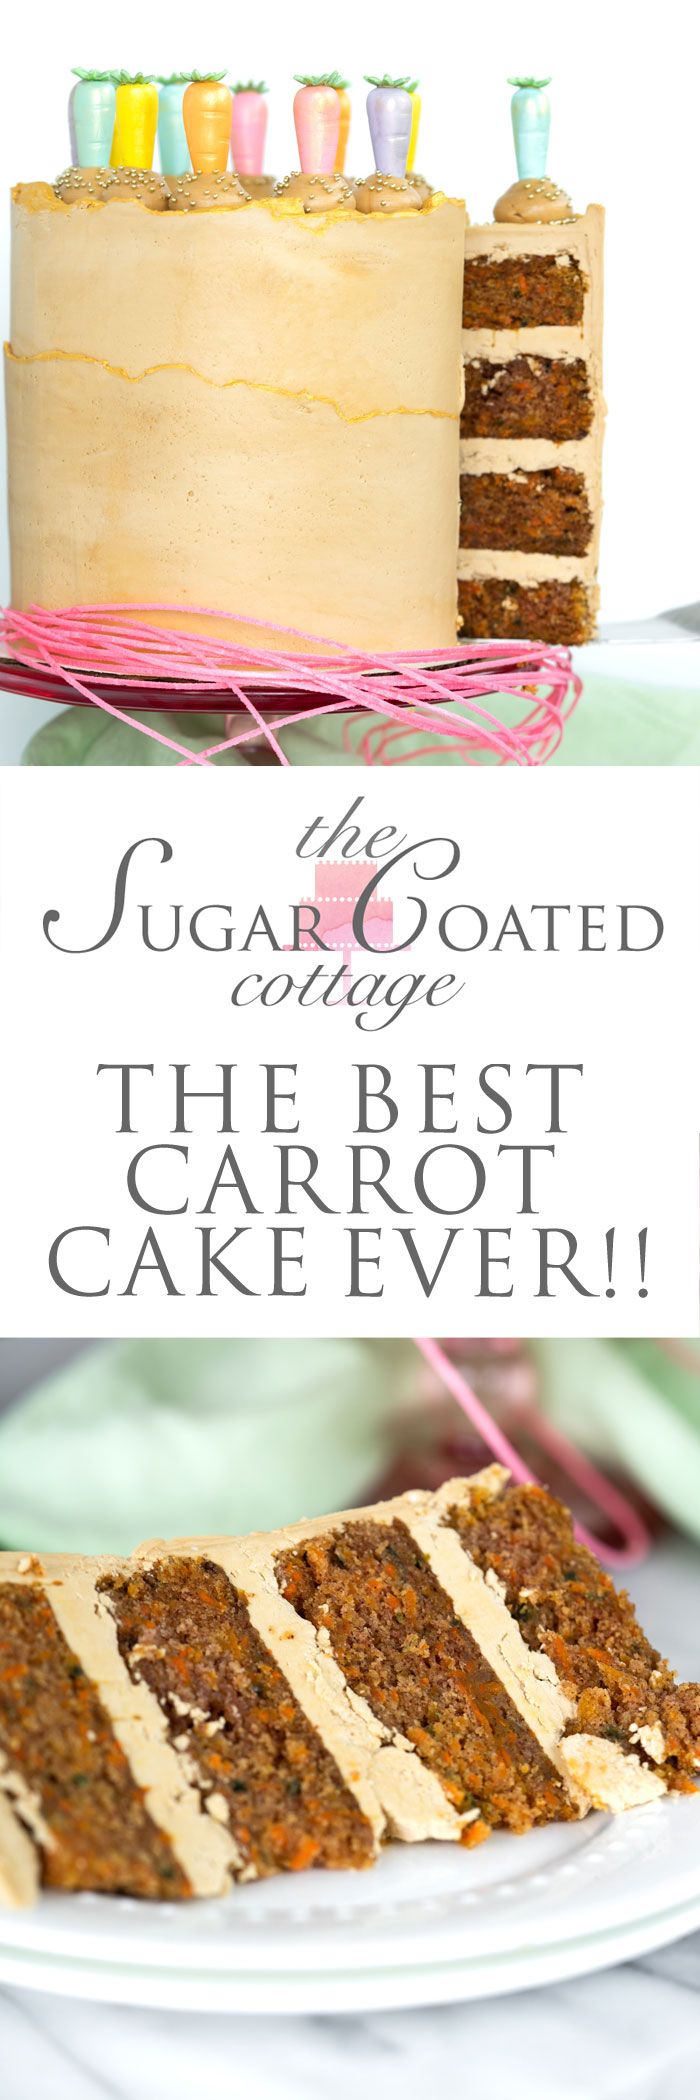 The Best Carrot Cake Recipe Ever. Hands down the most moist, carrot packed, delicious carrot cake recipe ever. | thesugarcoatedcottage.com #carrotcake #cake